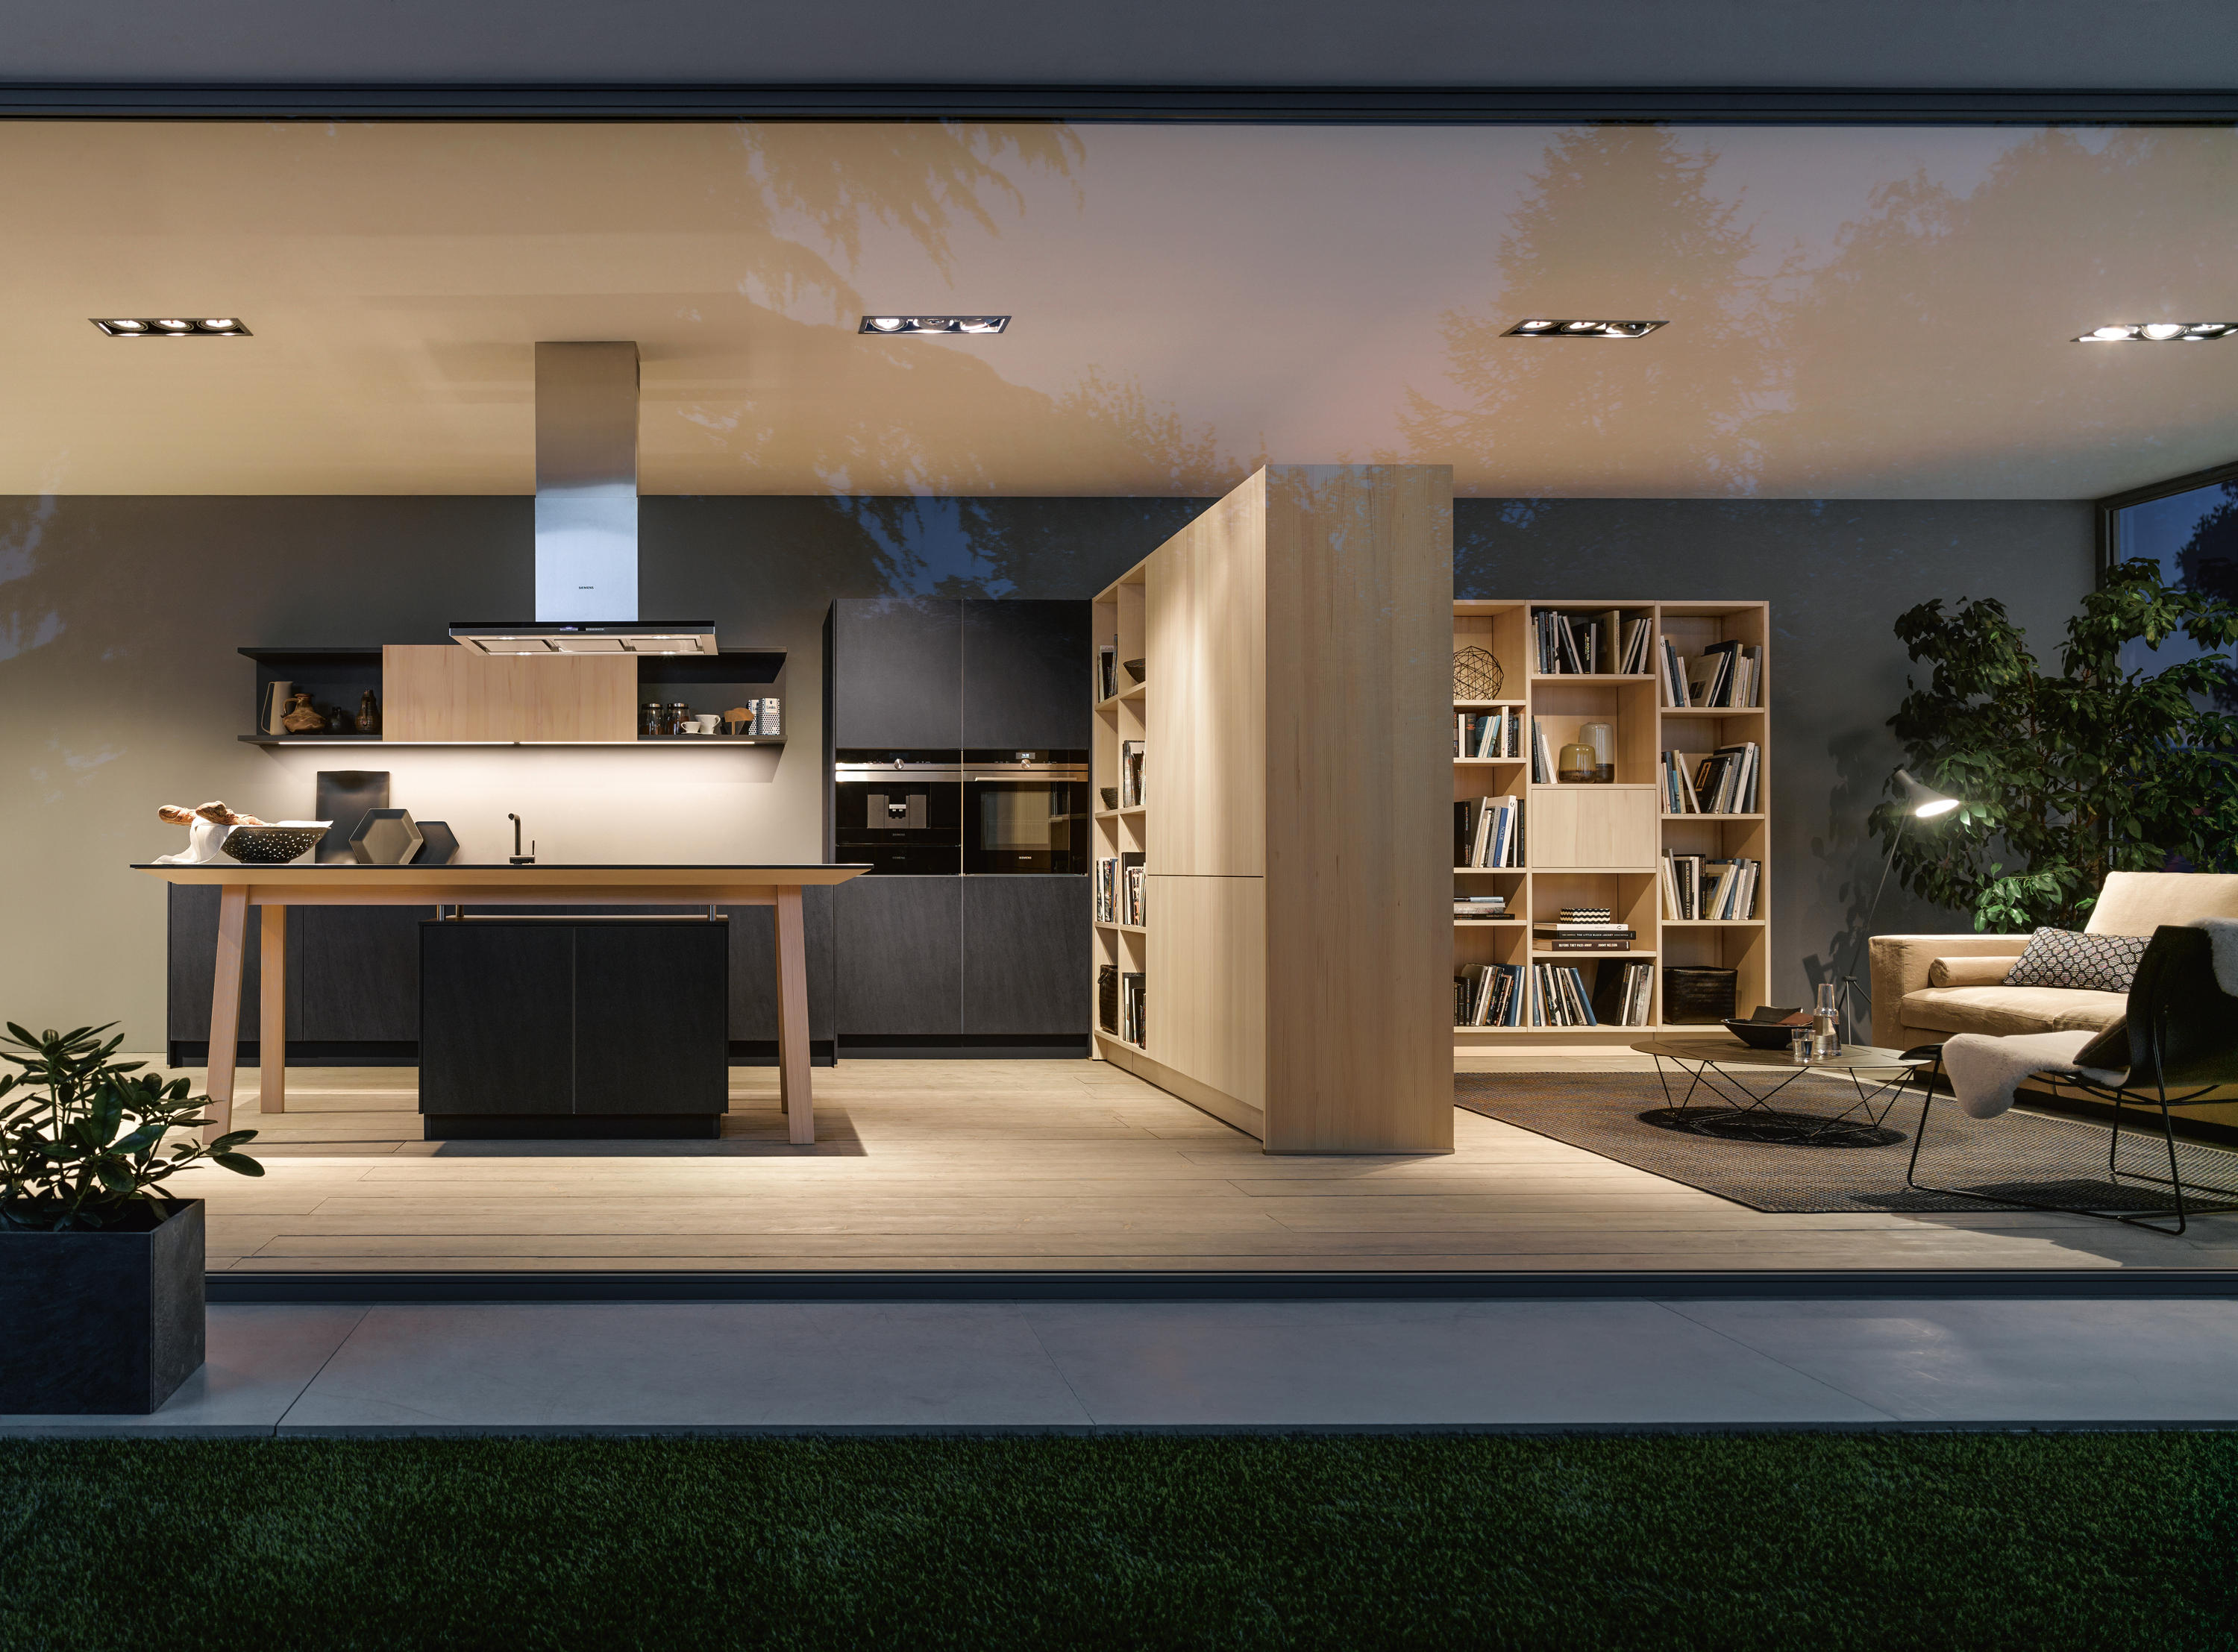 Nx 950 Ceramic Graphite Fitted Kitchens From Next125 Architonic